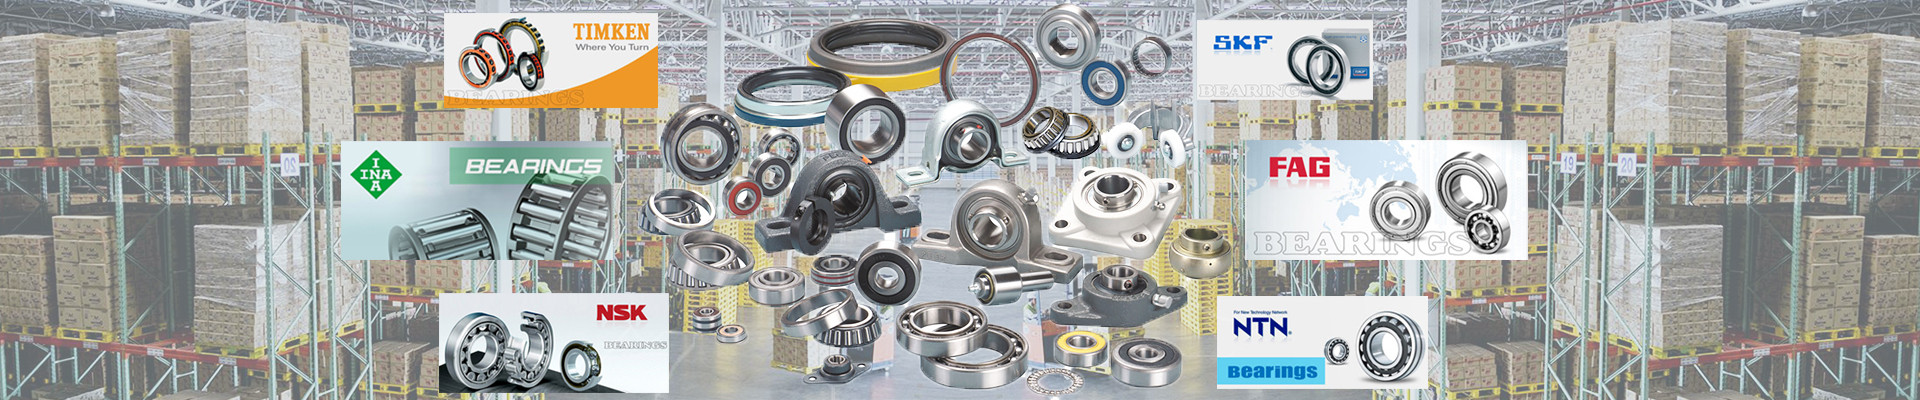 bearings services